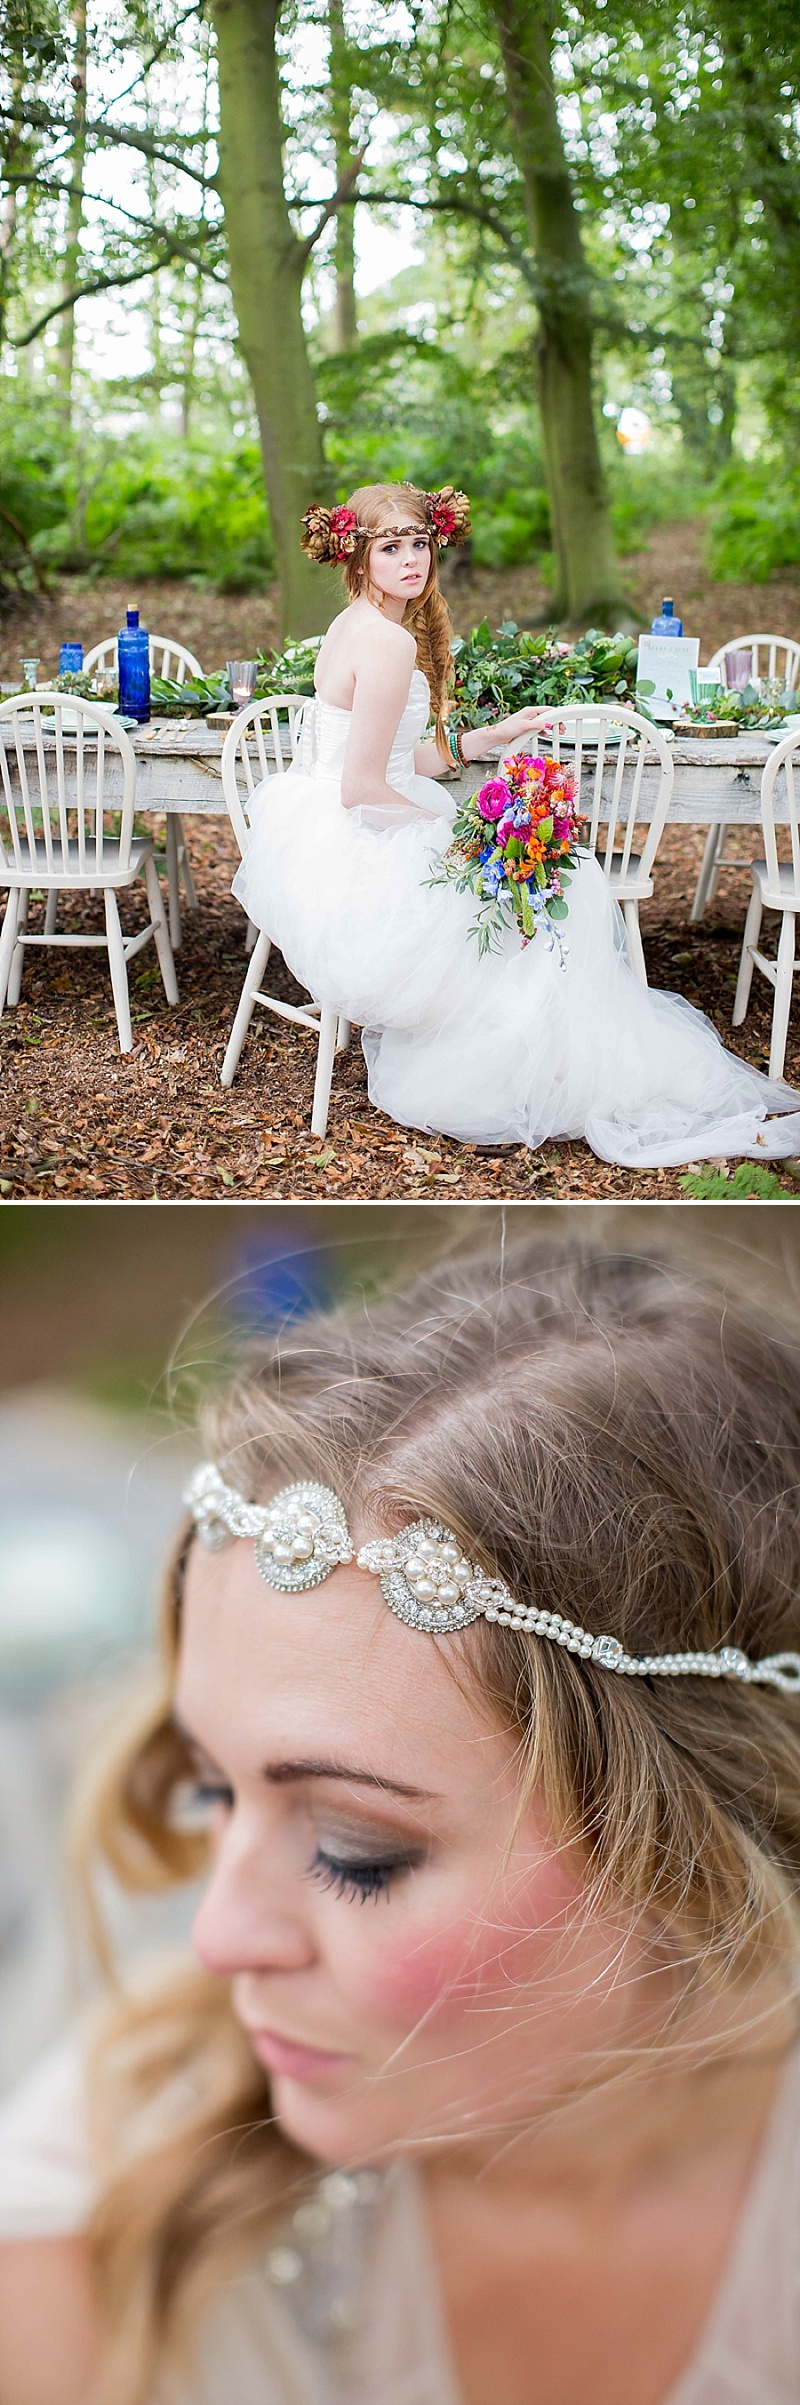 A bohemian wedding inspiration feature with a fresh flower crown backless dress and cute retro camper van_0066